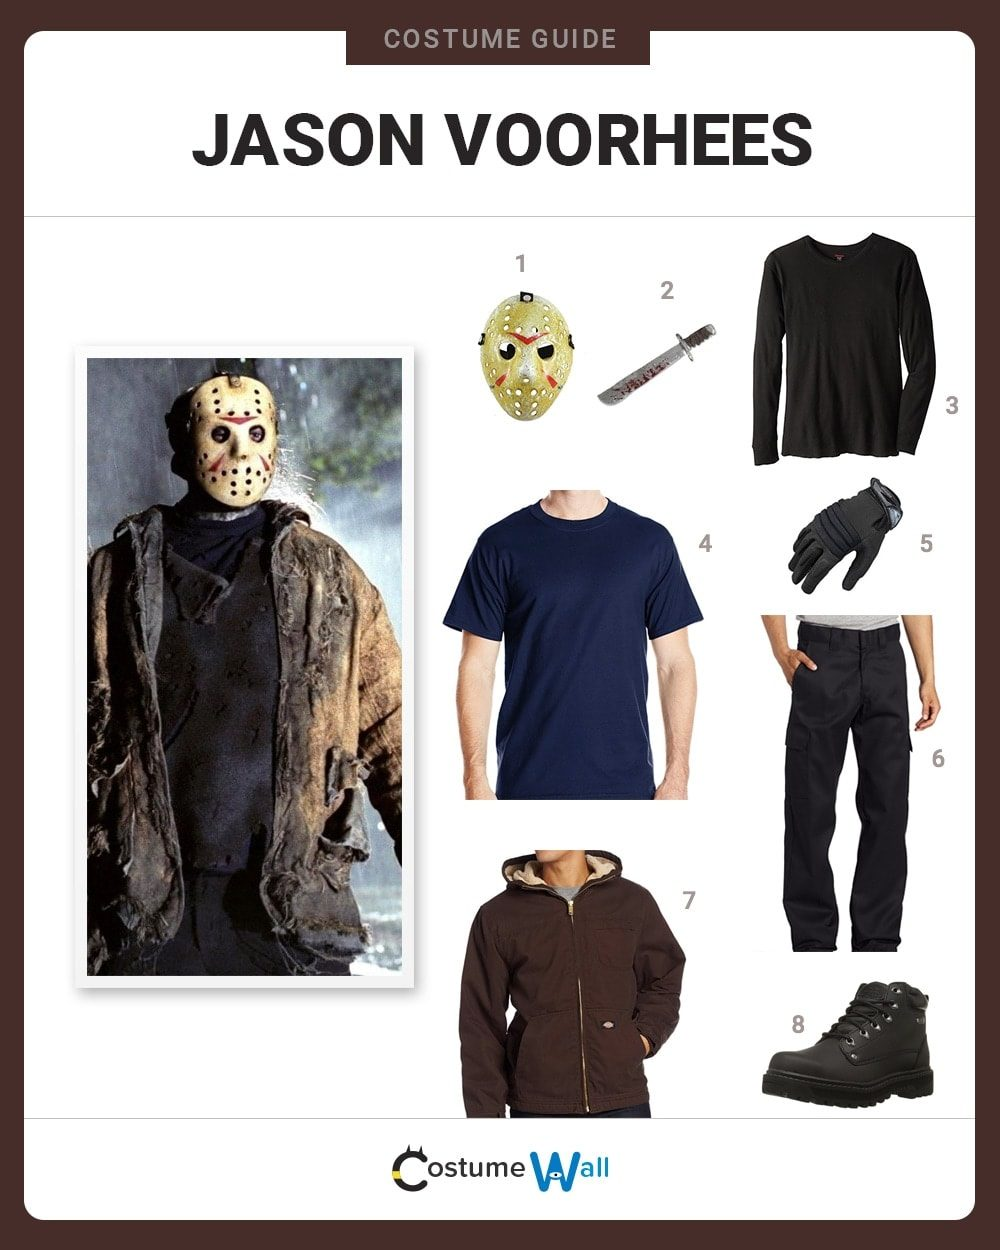 Jason Voorhees Costume Guide